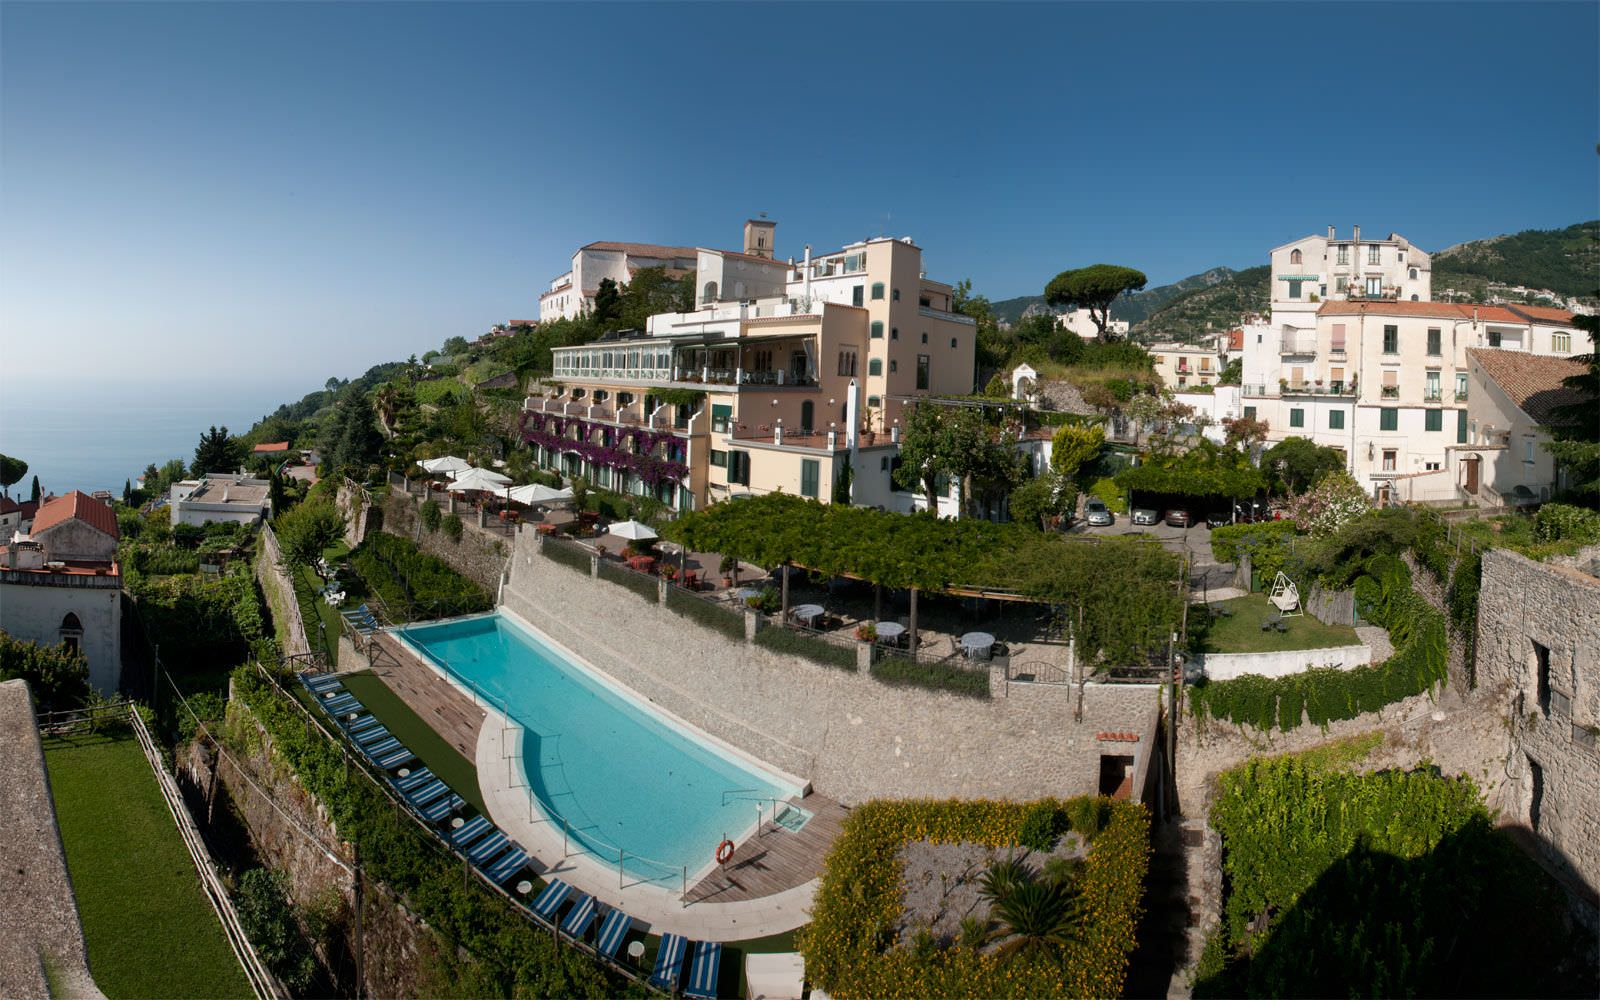 Ravello charming hotel ravello amalfi coast italy for Quaint hotel